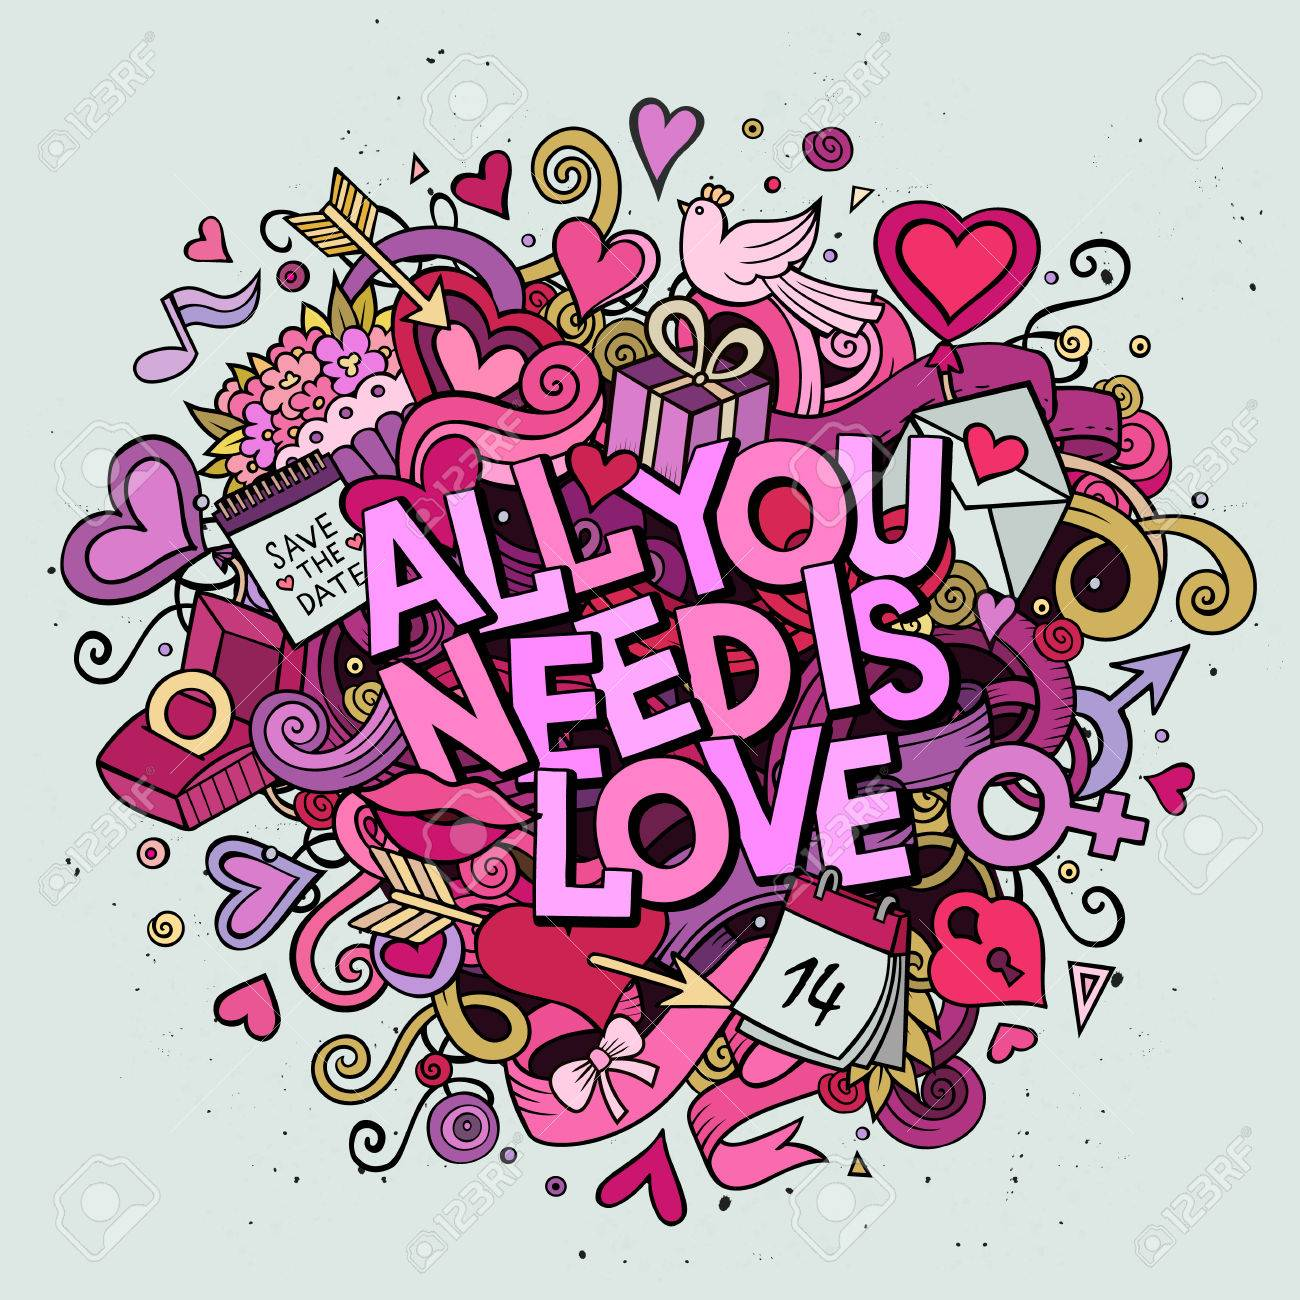 Cartoon vector hand drawn Doodle All You Need is Love illustration. Colorful detailed design background with objects and symbols. All objects are separated - 51045810